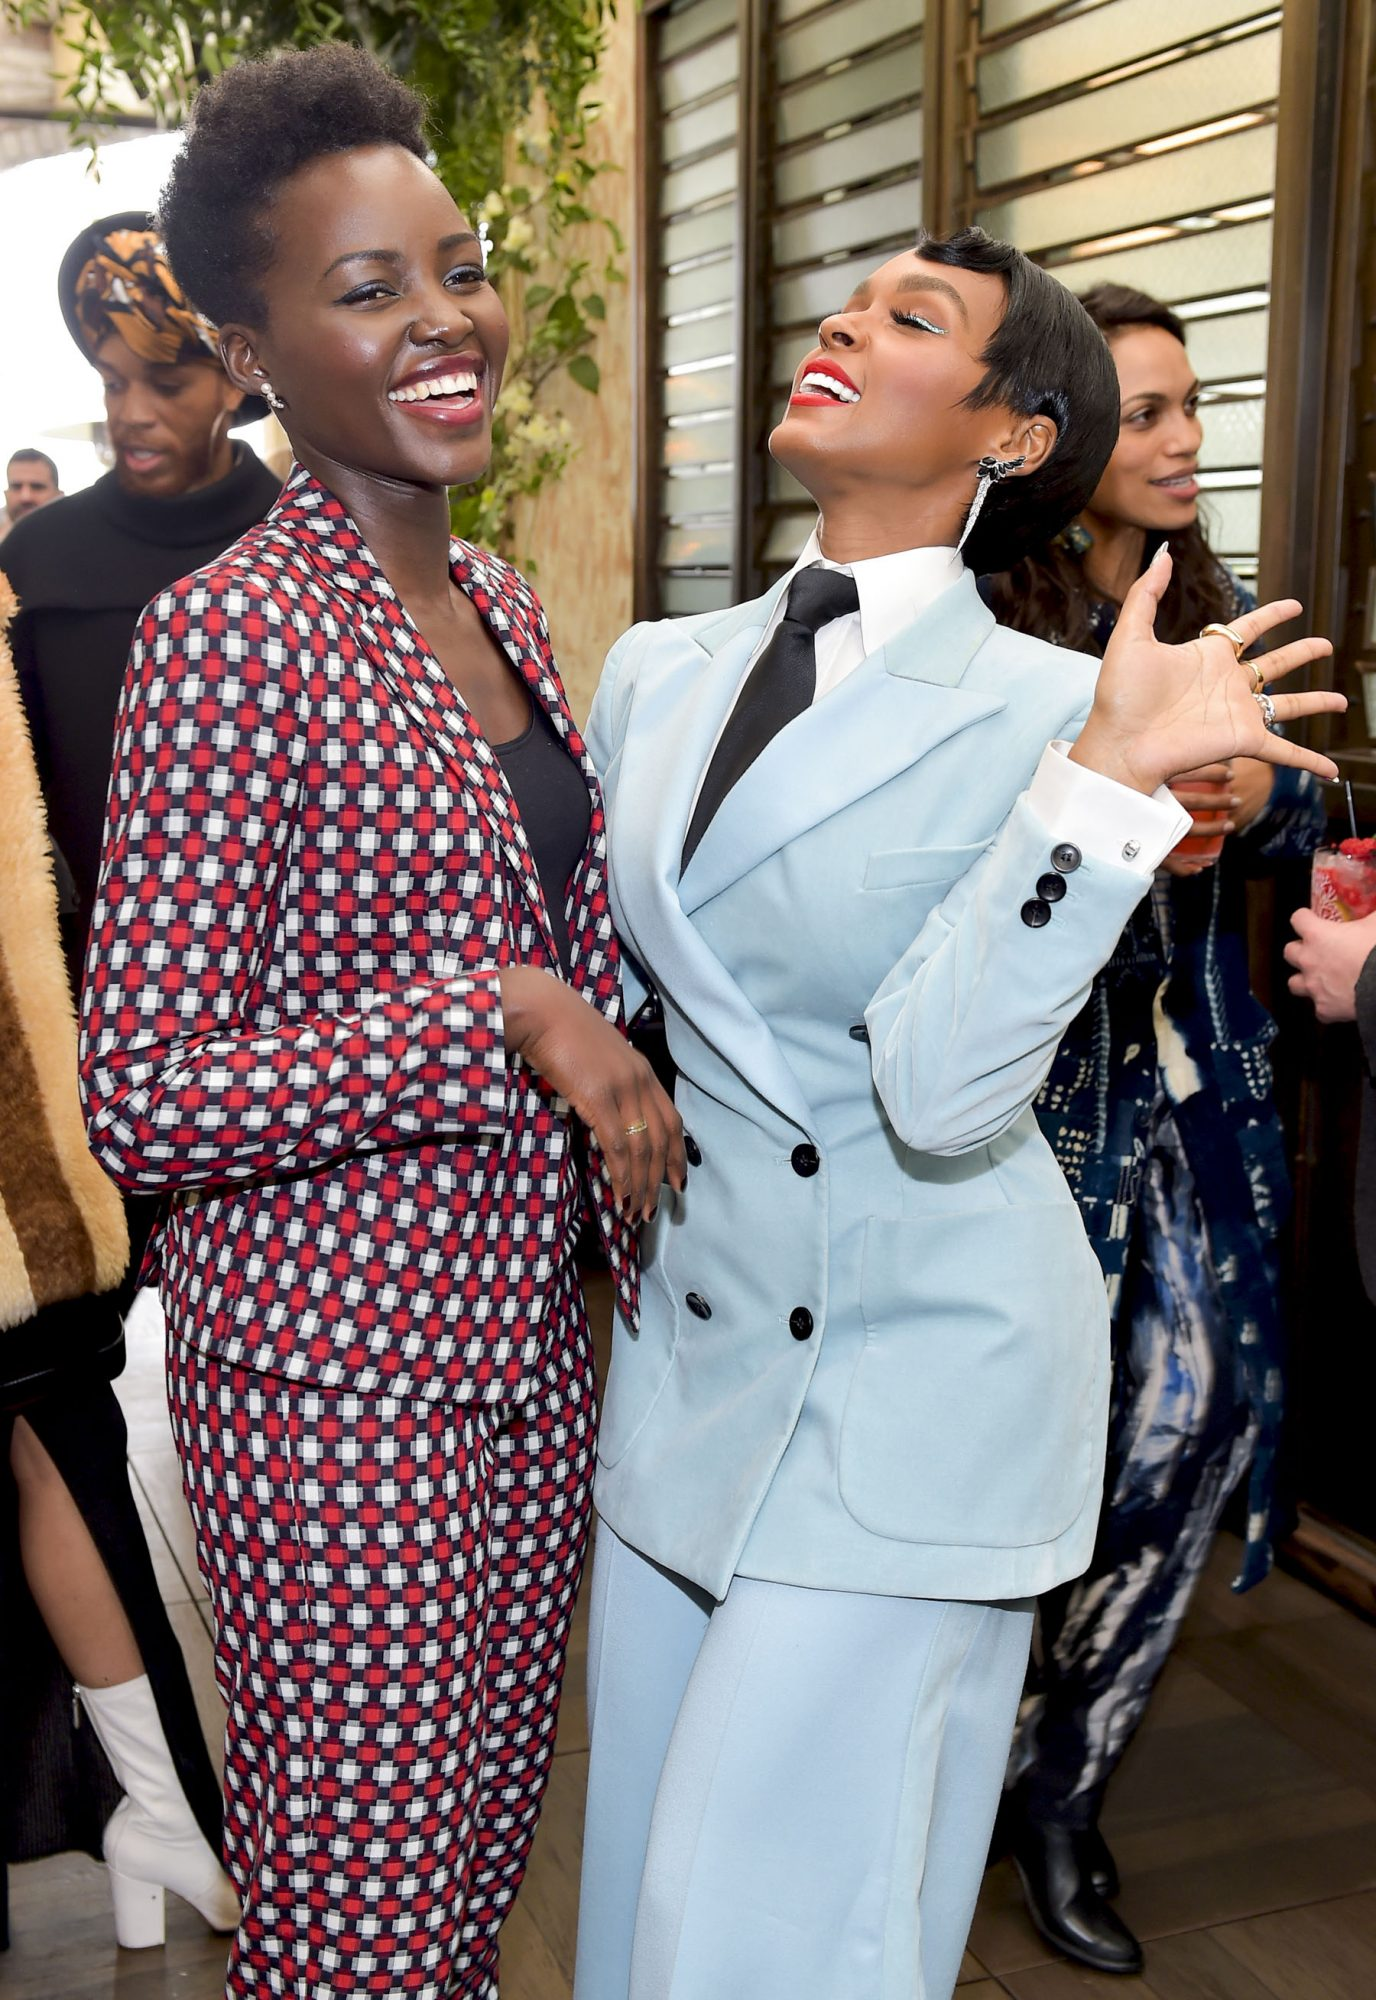 """WEST HOLLYWOOD, CA - MARCH 02: Actors Lupita Nyong'o and Janelle Monae pose as Janelle Monae and Belvedere Vodka kick-off """"A Beautiful Future"""" Campaign with Fem the Future Brunch at Catch LA on March 2, 2018 in West Hollywood, California. (Photo by Donato Sardella/Getty Images for Belvedere Vodka)"""